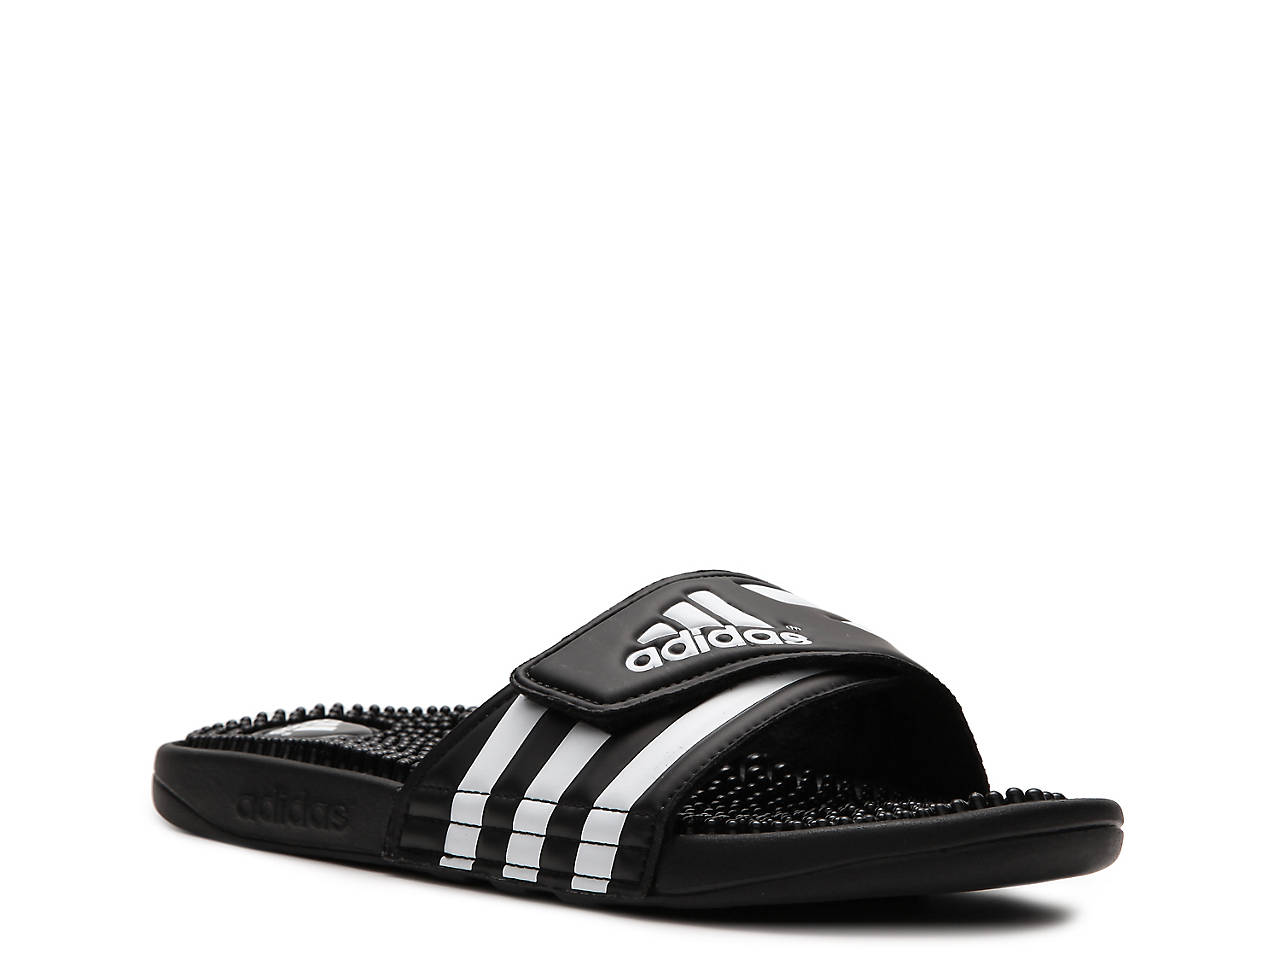 ca8d4e283cfc8 adidas Adissage Slide Sandal - Women s Women s Shoes